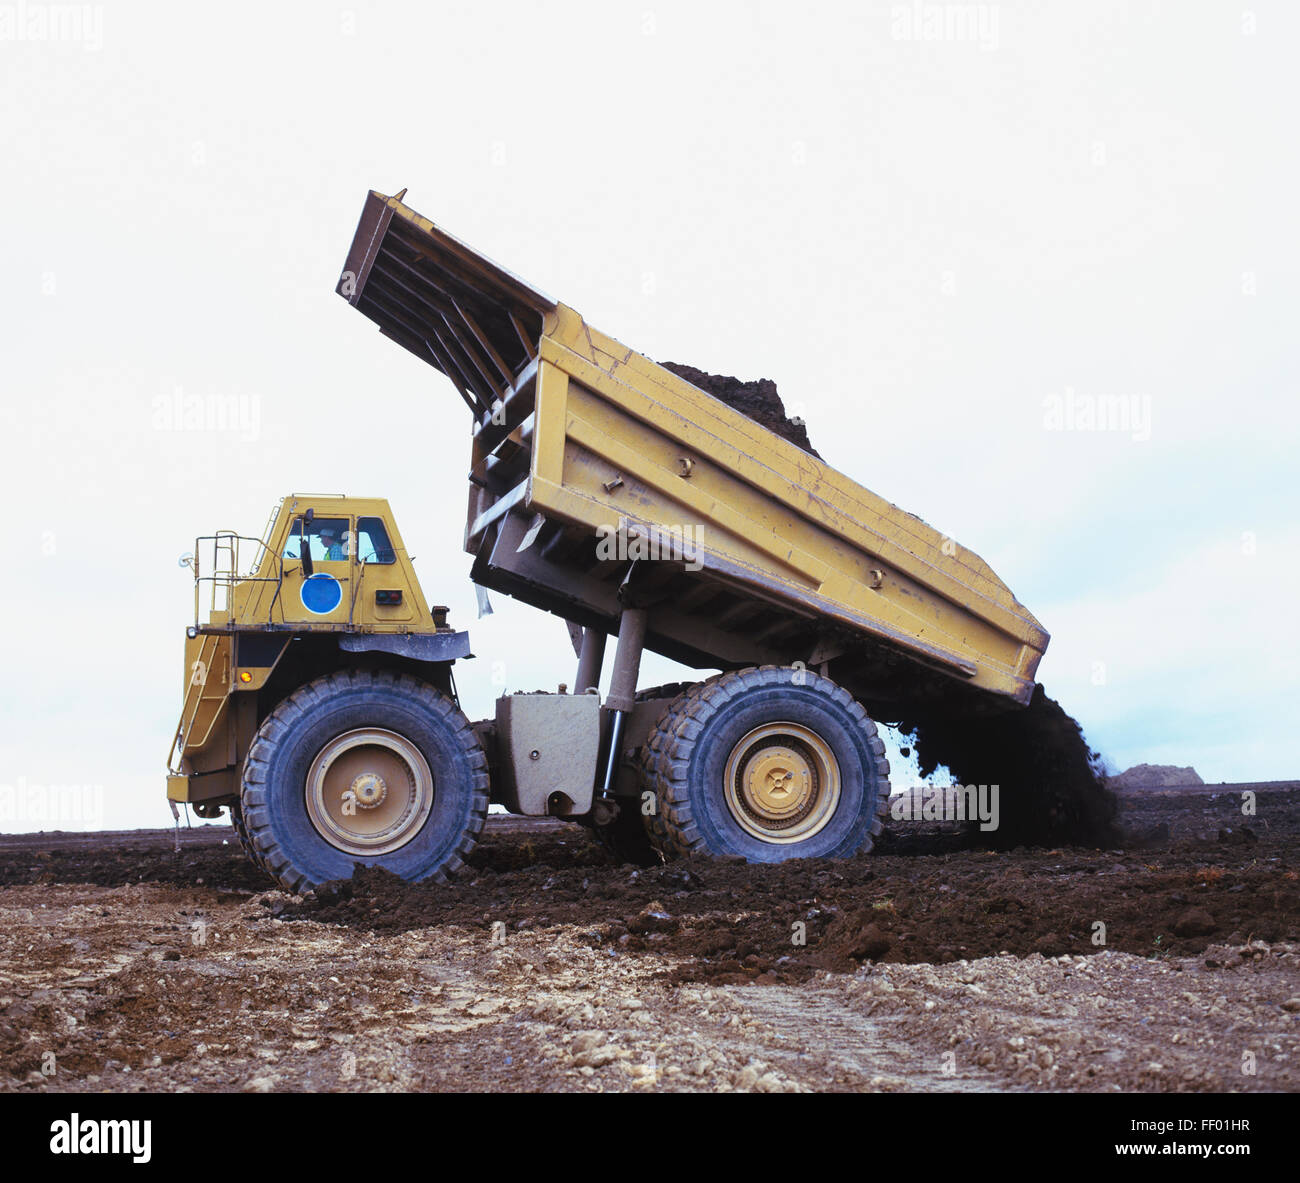 Tipper truck dumping load, side view - Stock Image